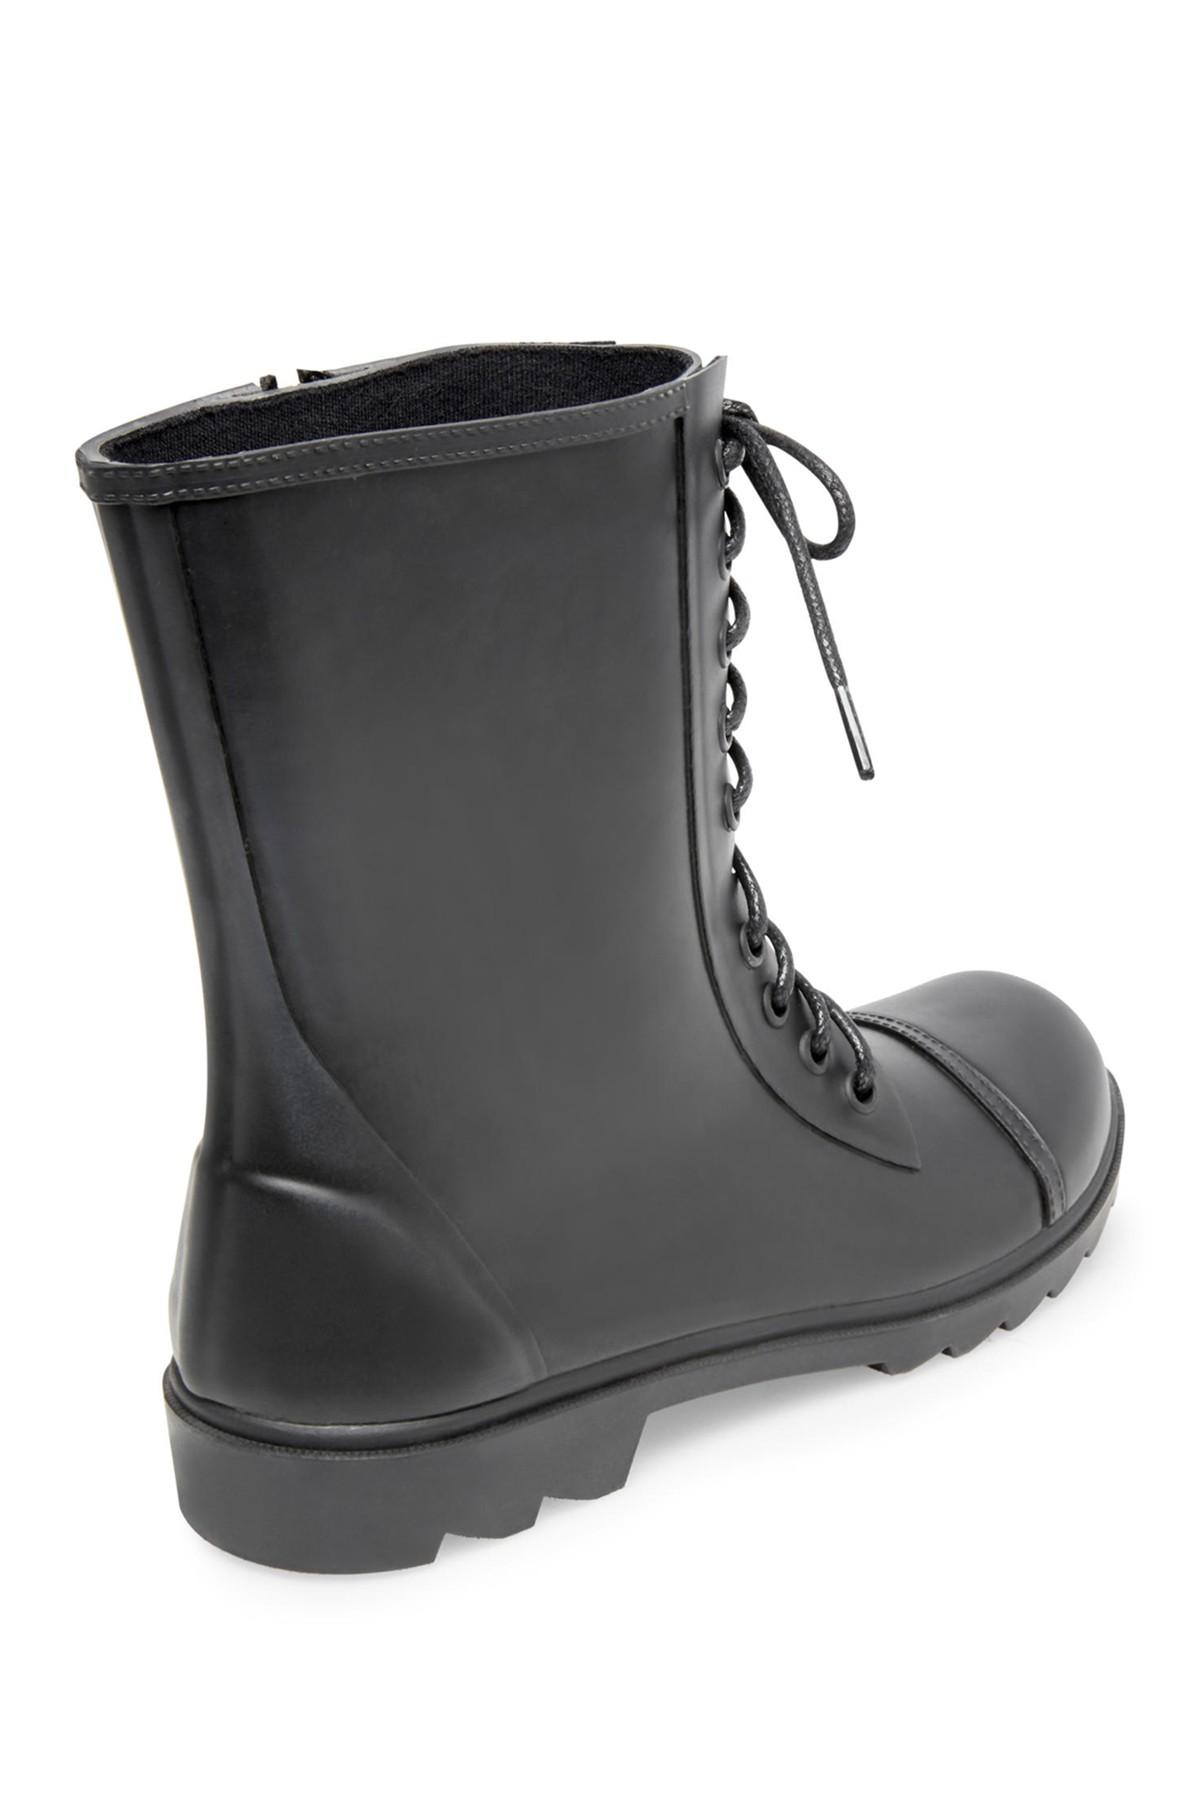 659d0d94c53 Steve Madden - Black Troopa Waterproof Rain Boot (women) - Lyst. View  fullscreen